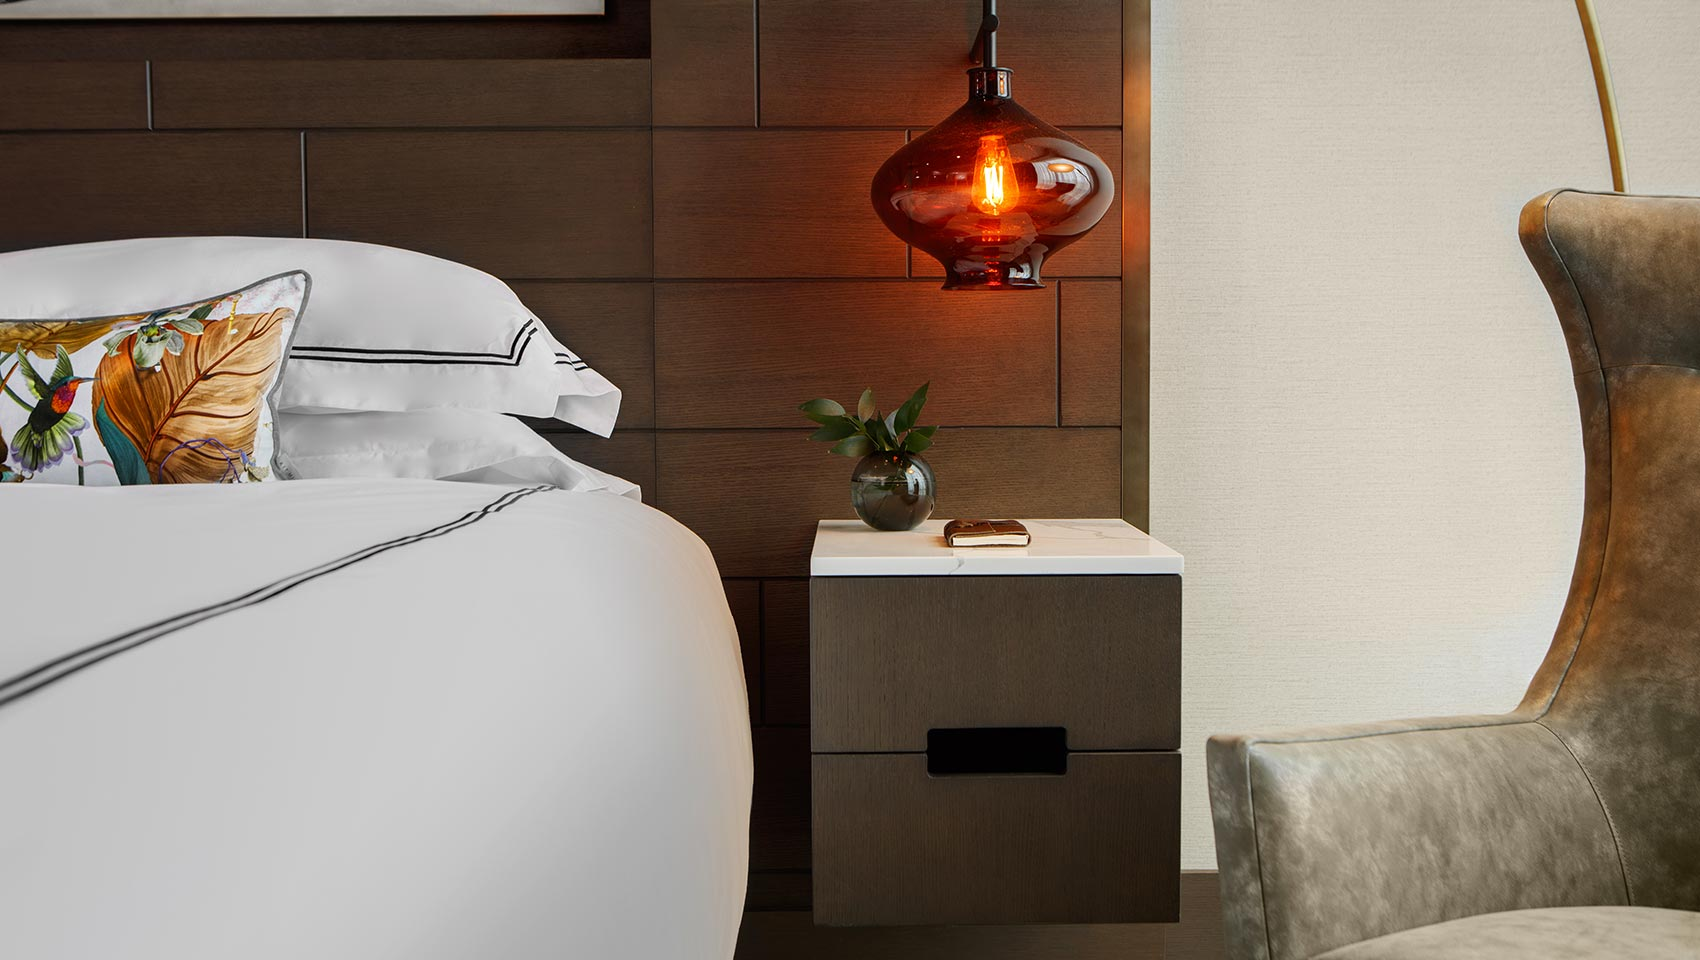 hotel bed pillow and side lamp